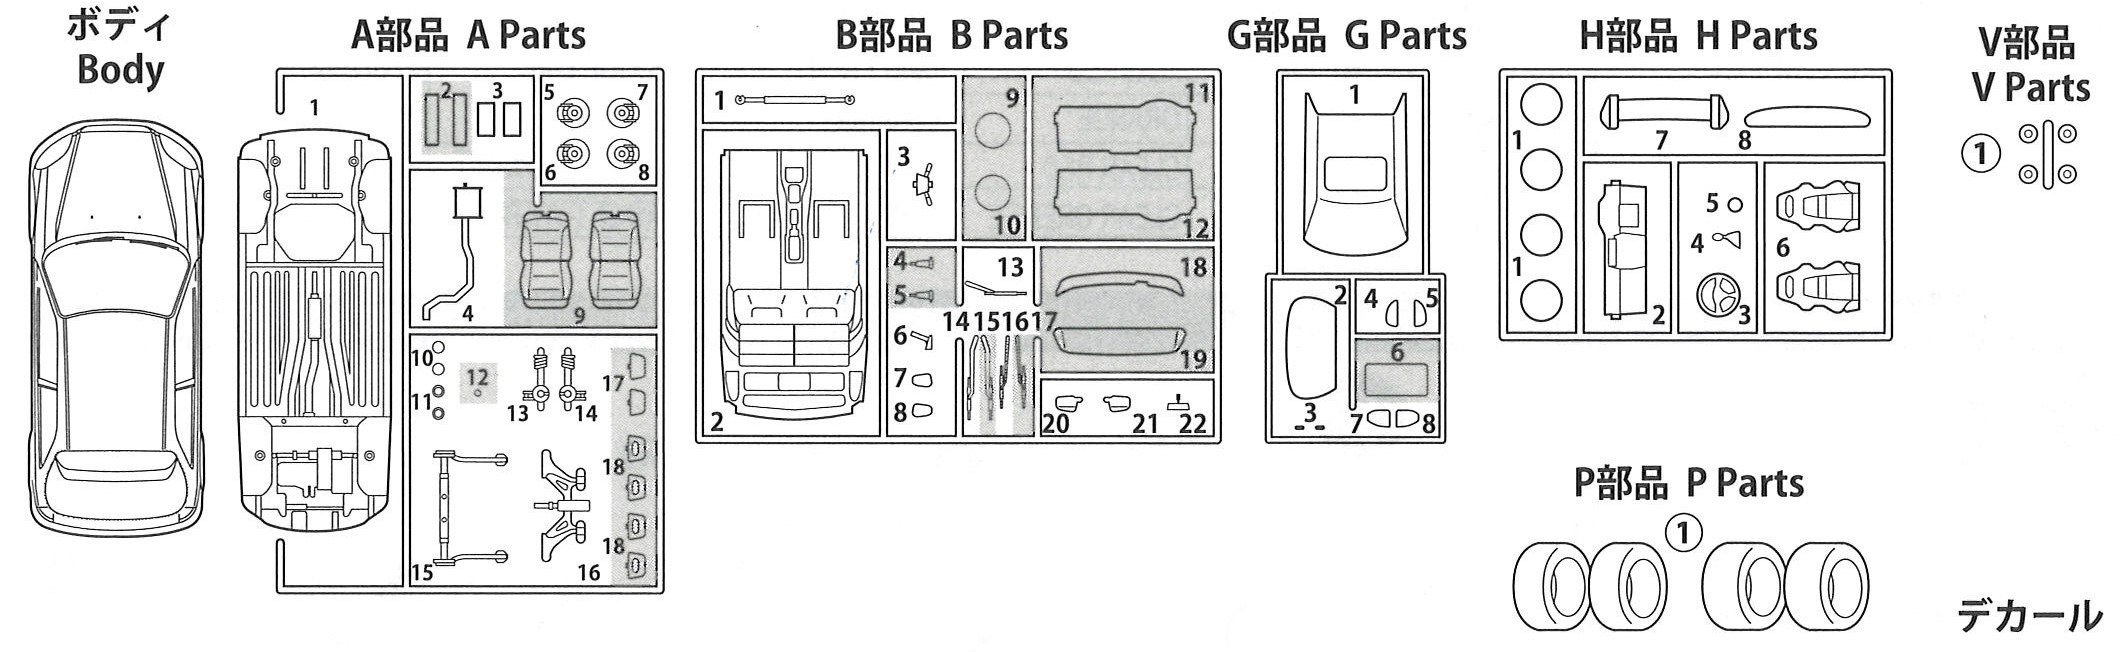 Fujimi 8 Toyland Hobby Modeling Magazine Subaru Impreza Wrx Intake Amp Exhaust Diagram The Official Blog Of Seat Is Reproduced By Recaro In Addition Logo For Also Included Decal Wheel A Genuine White Item